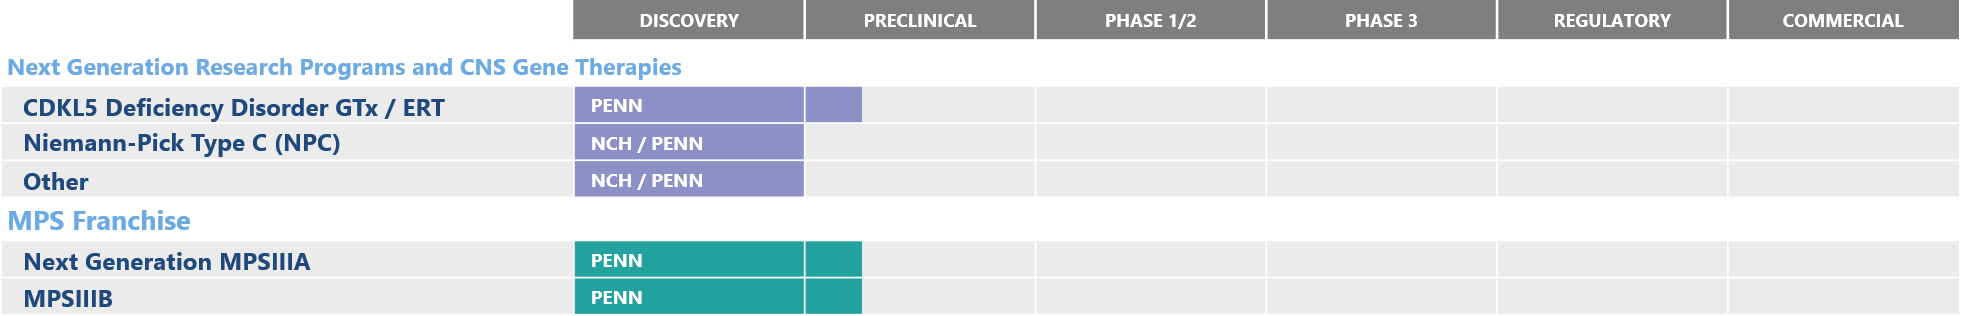 Amicus Preclinical Pipeline